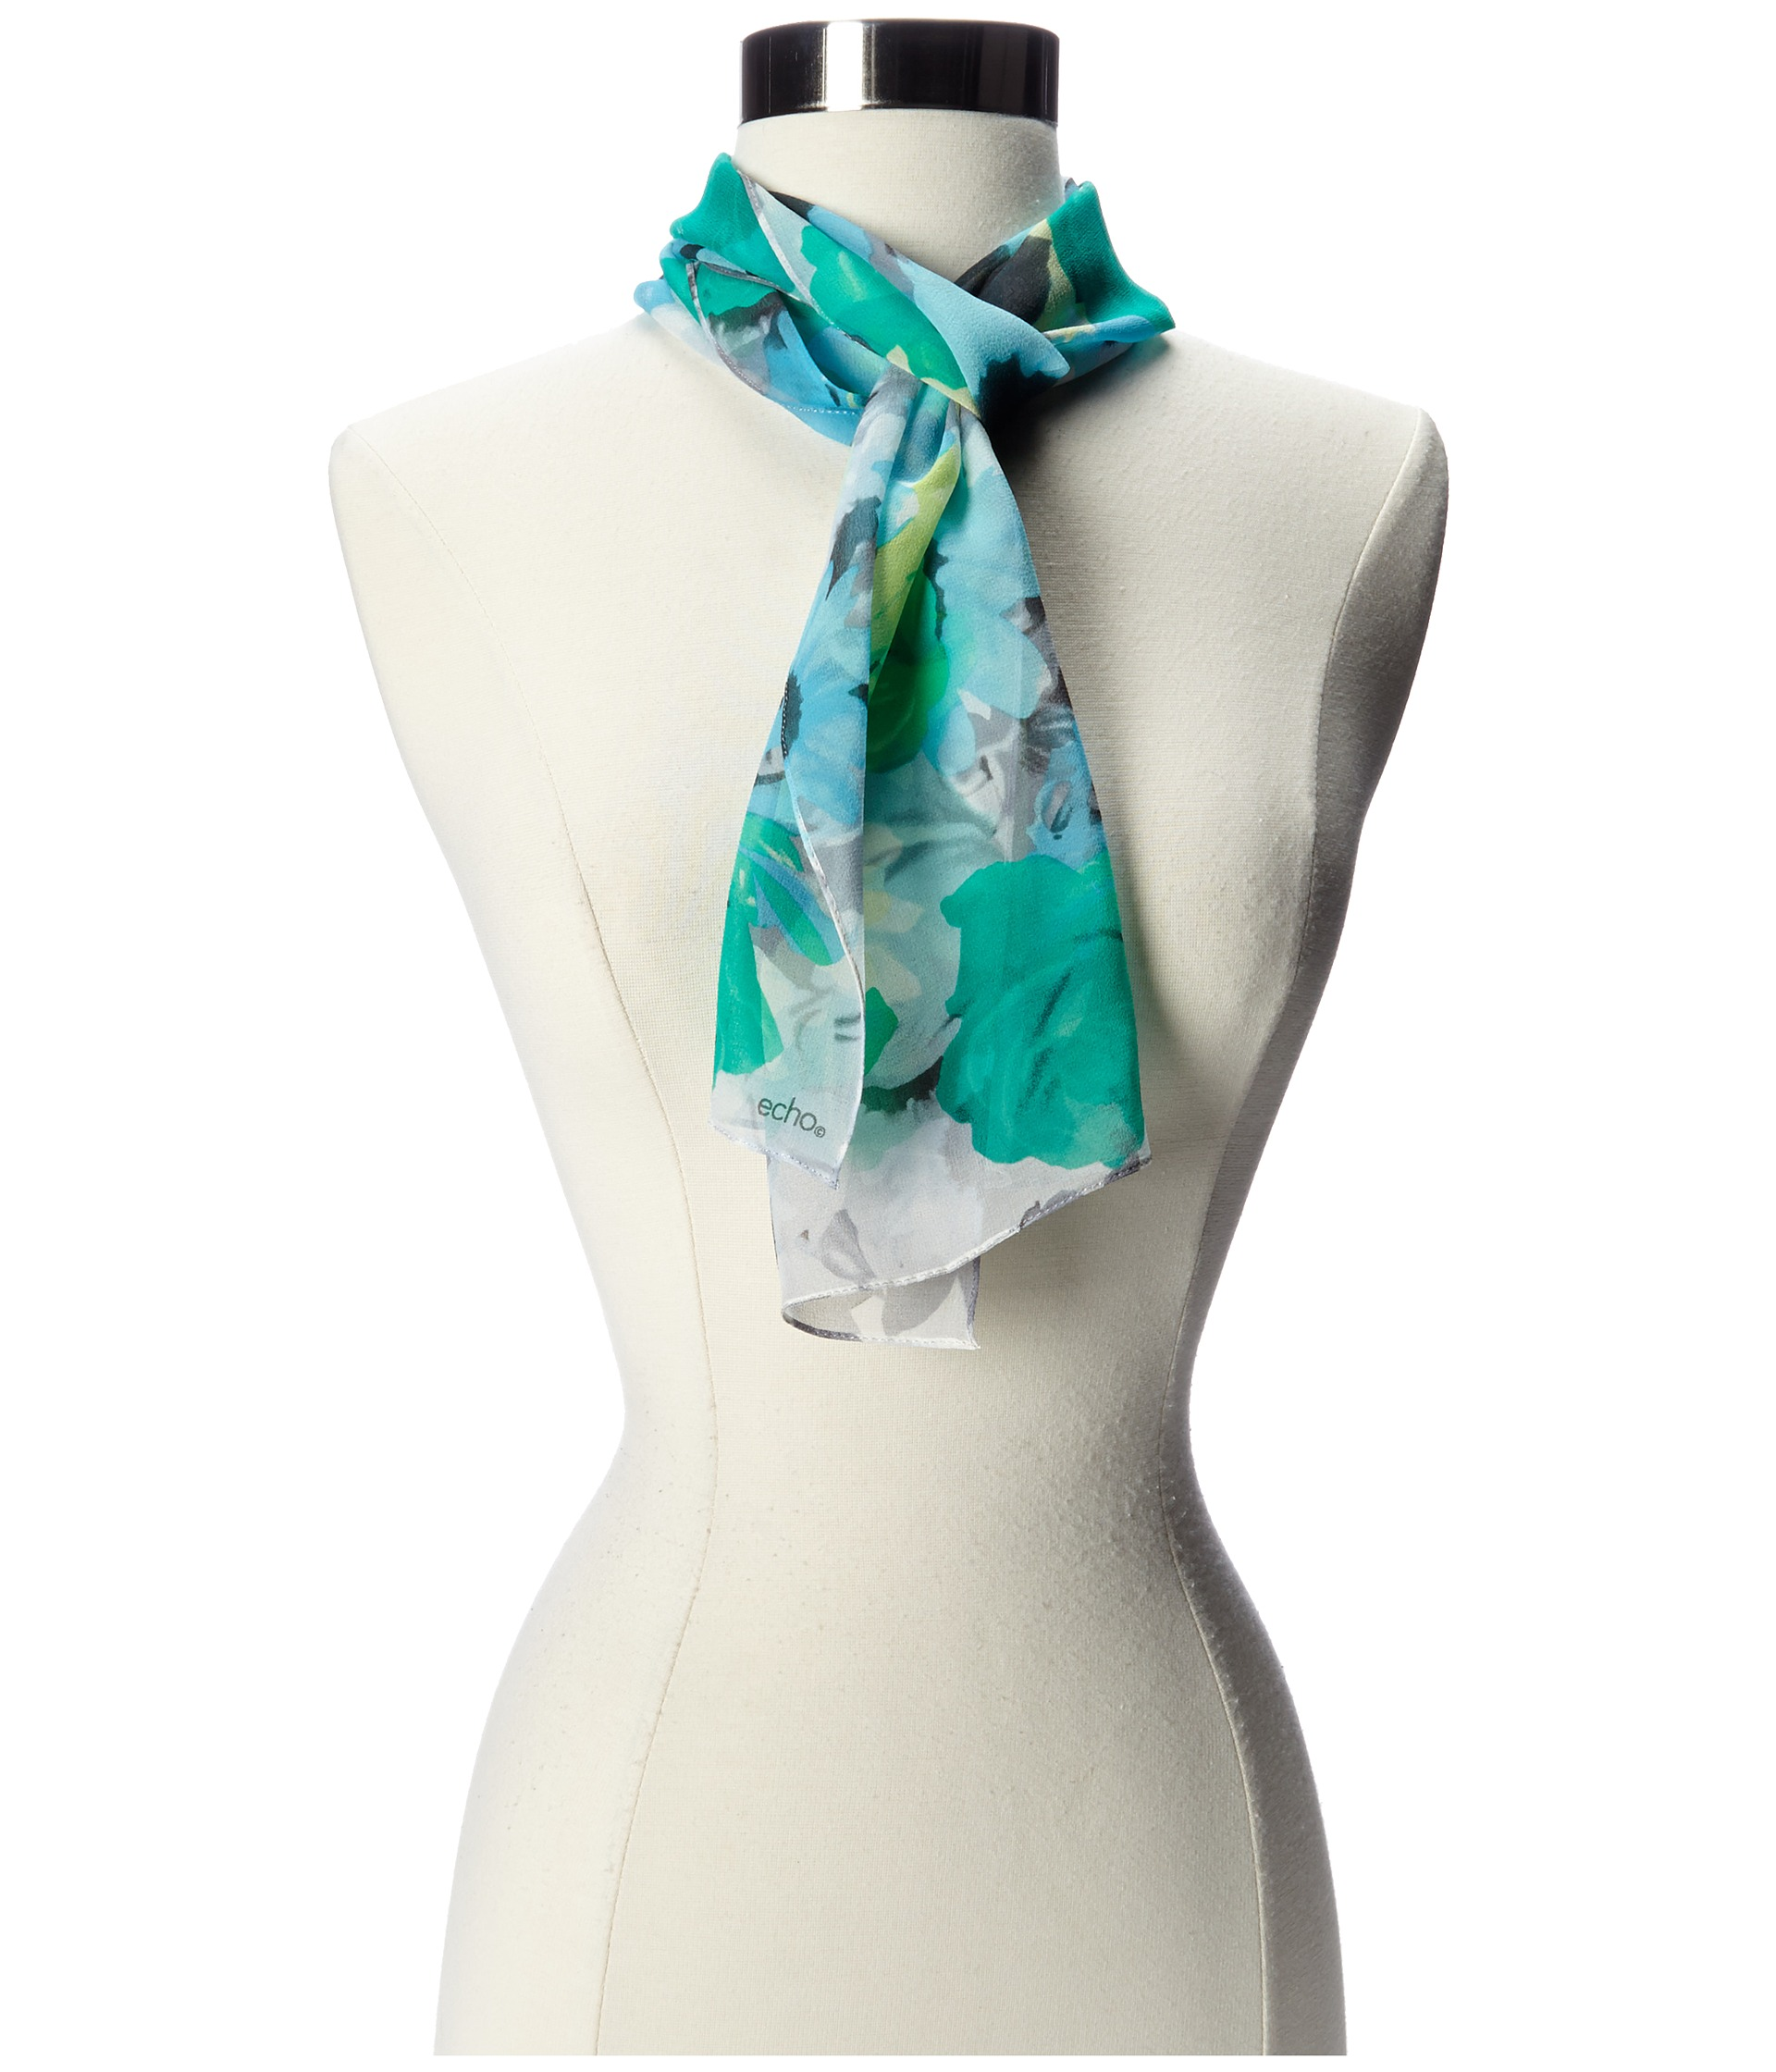 echo design cheerful floral scarf bright turquoise